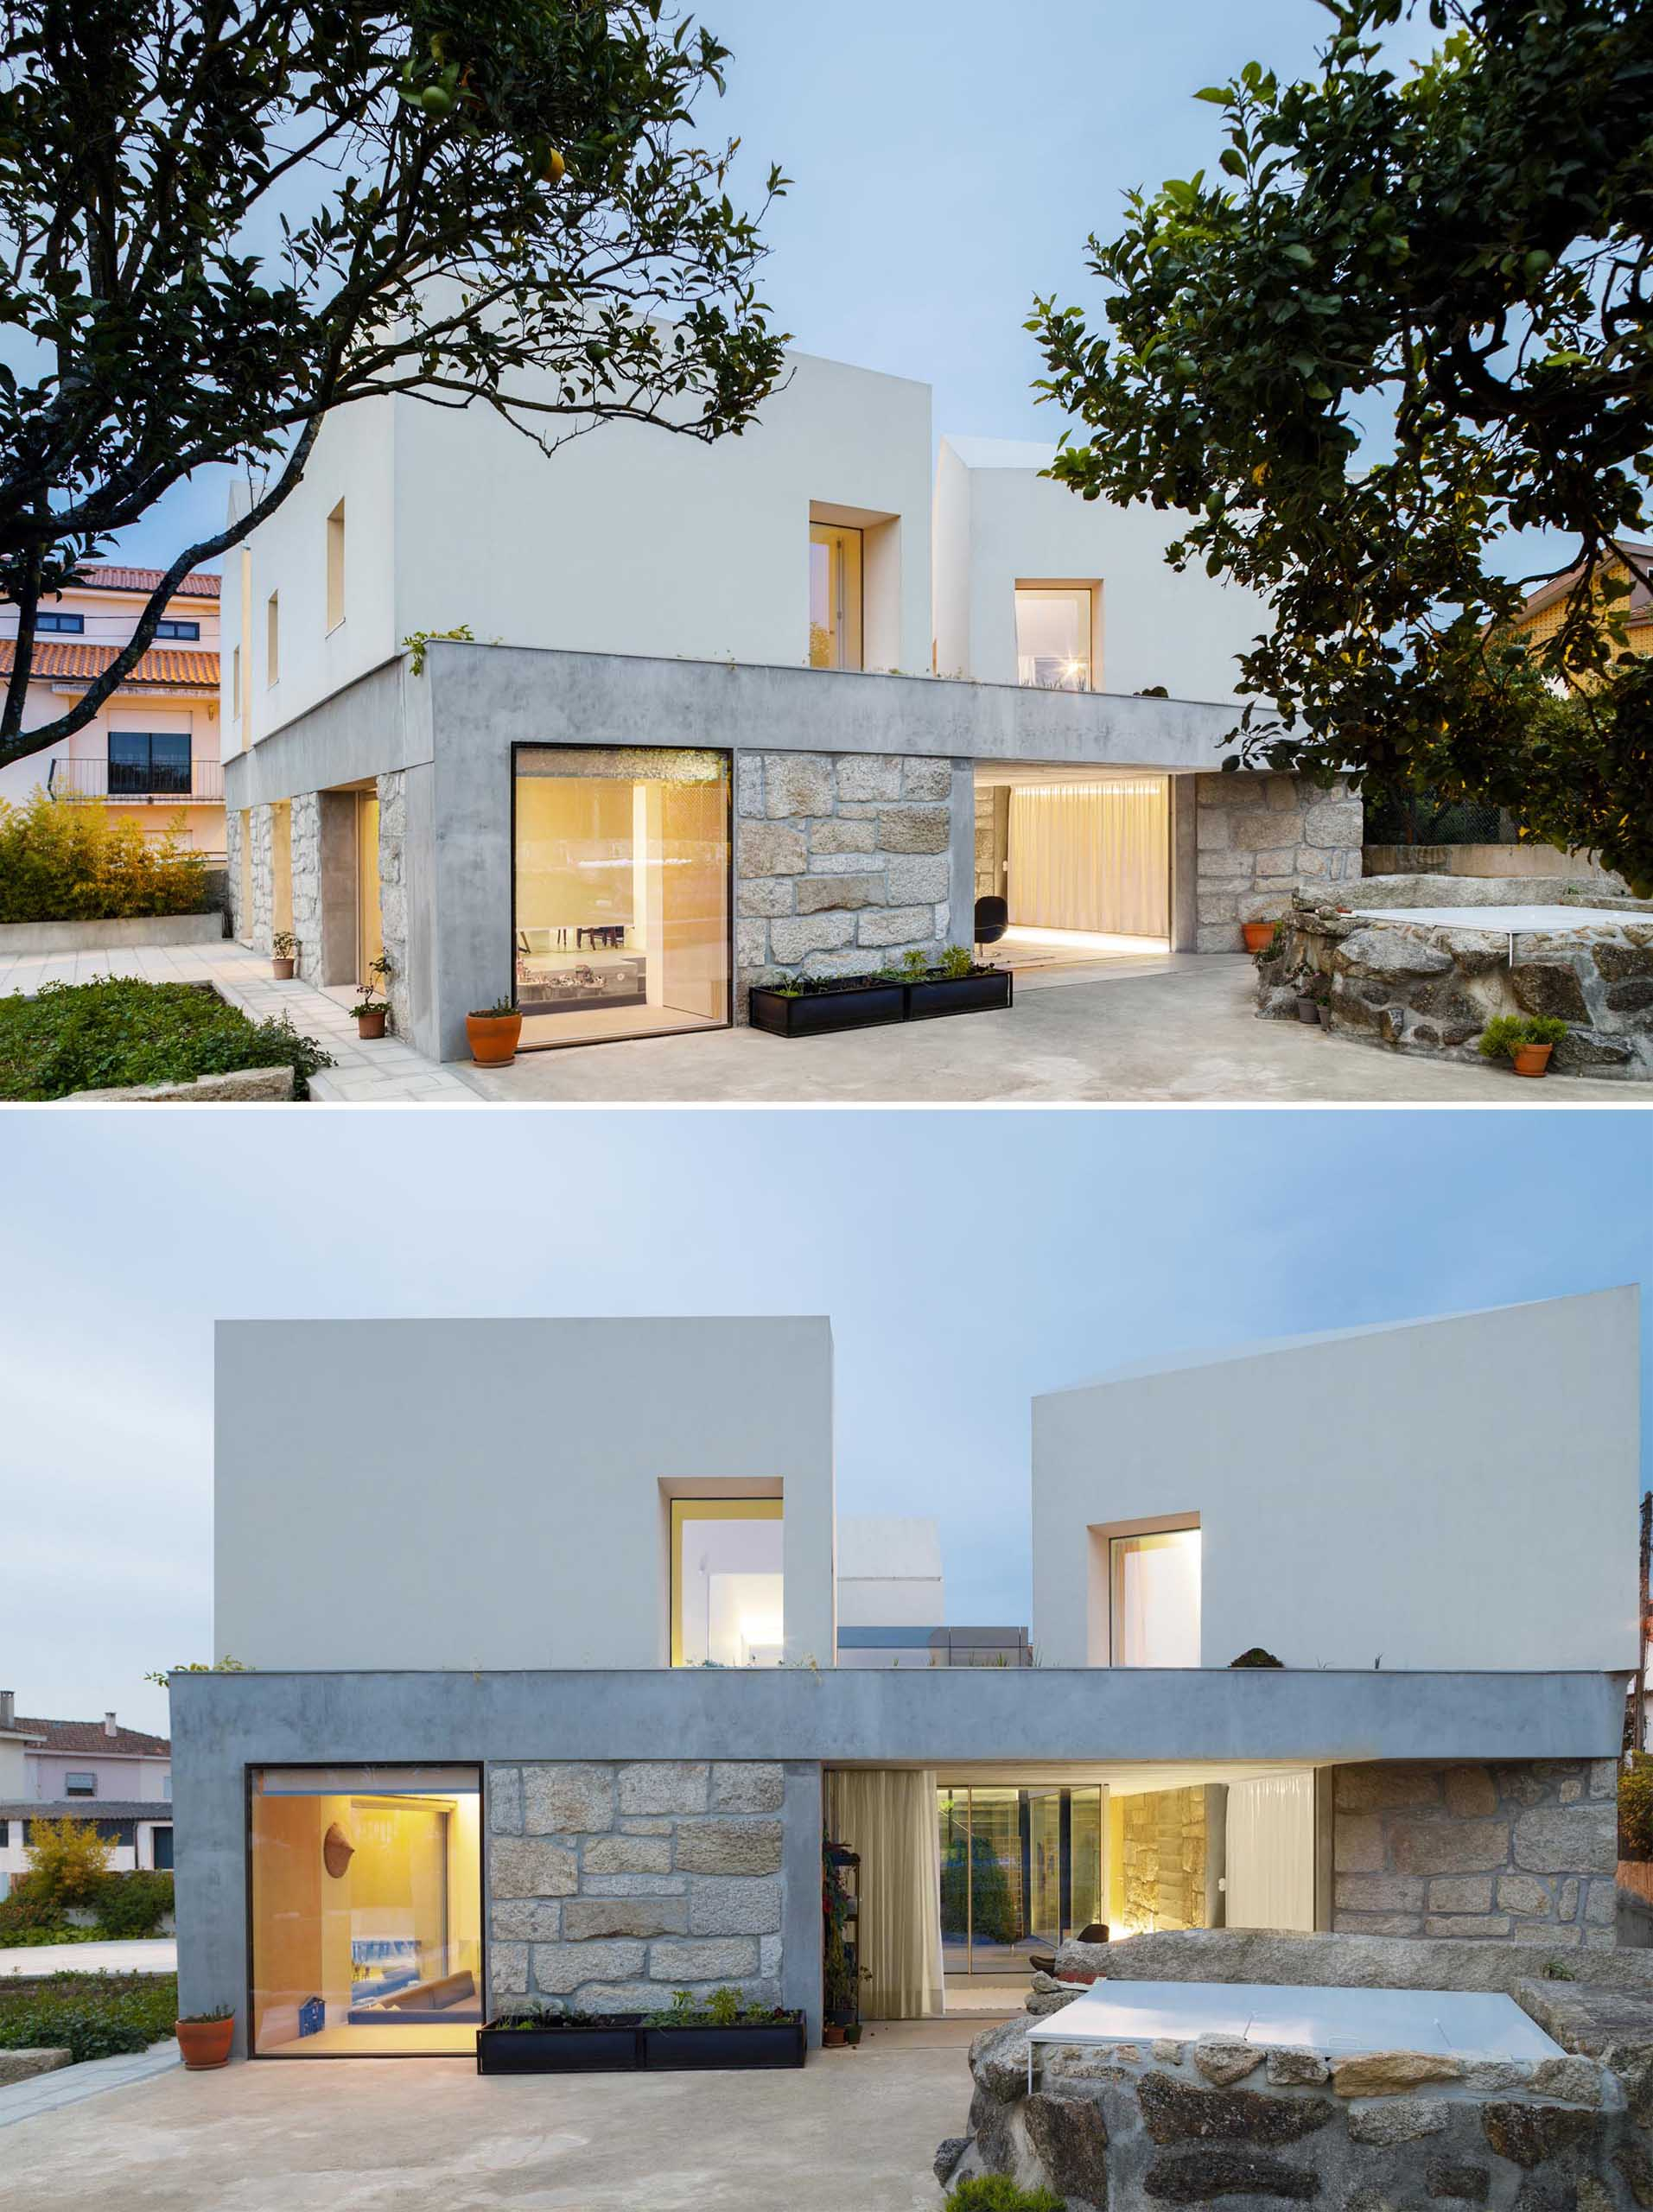 A concrete slab separates the stone walls and white upper portion of this modern home.